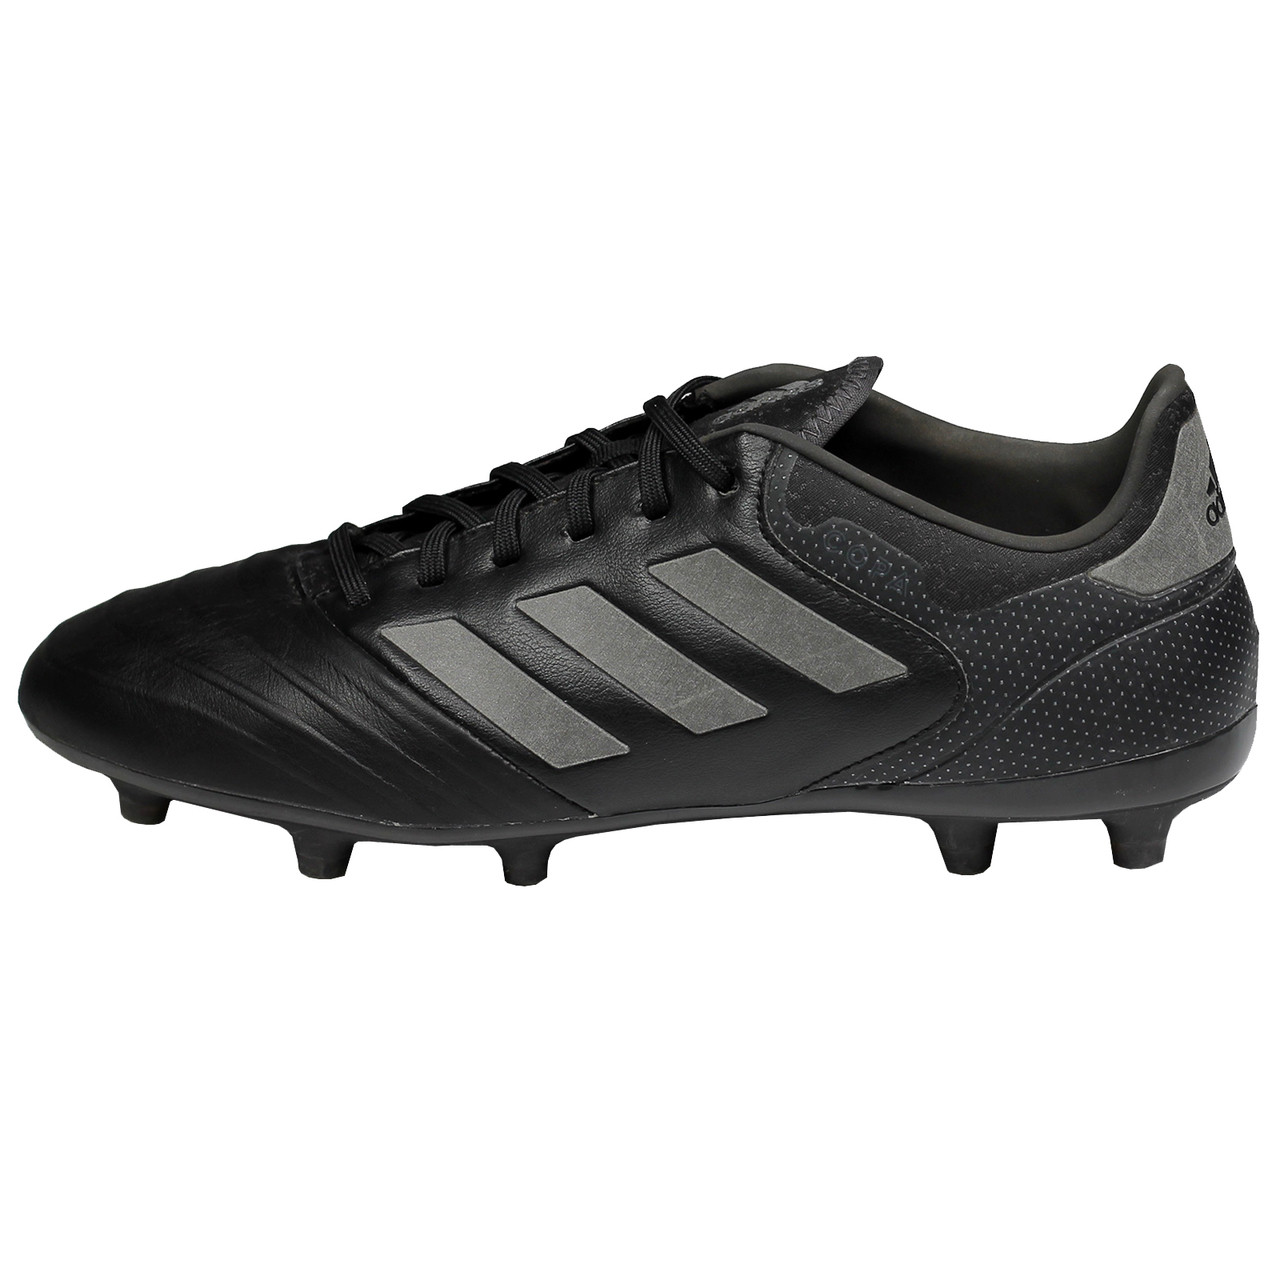 4064377b8 Adidas Copa 18.2 FG Men s Soccer Cleats CP8954 - Black